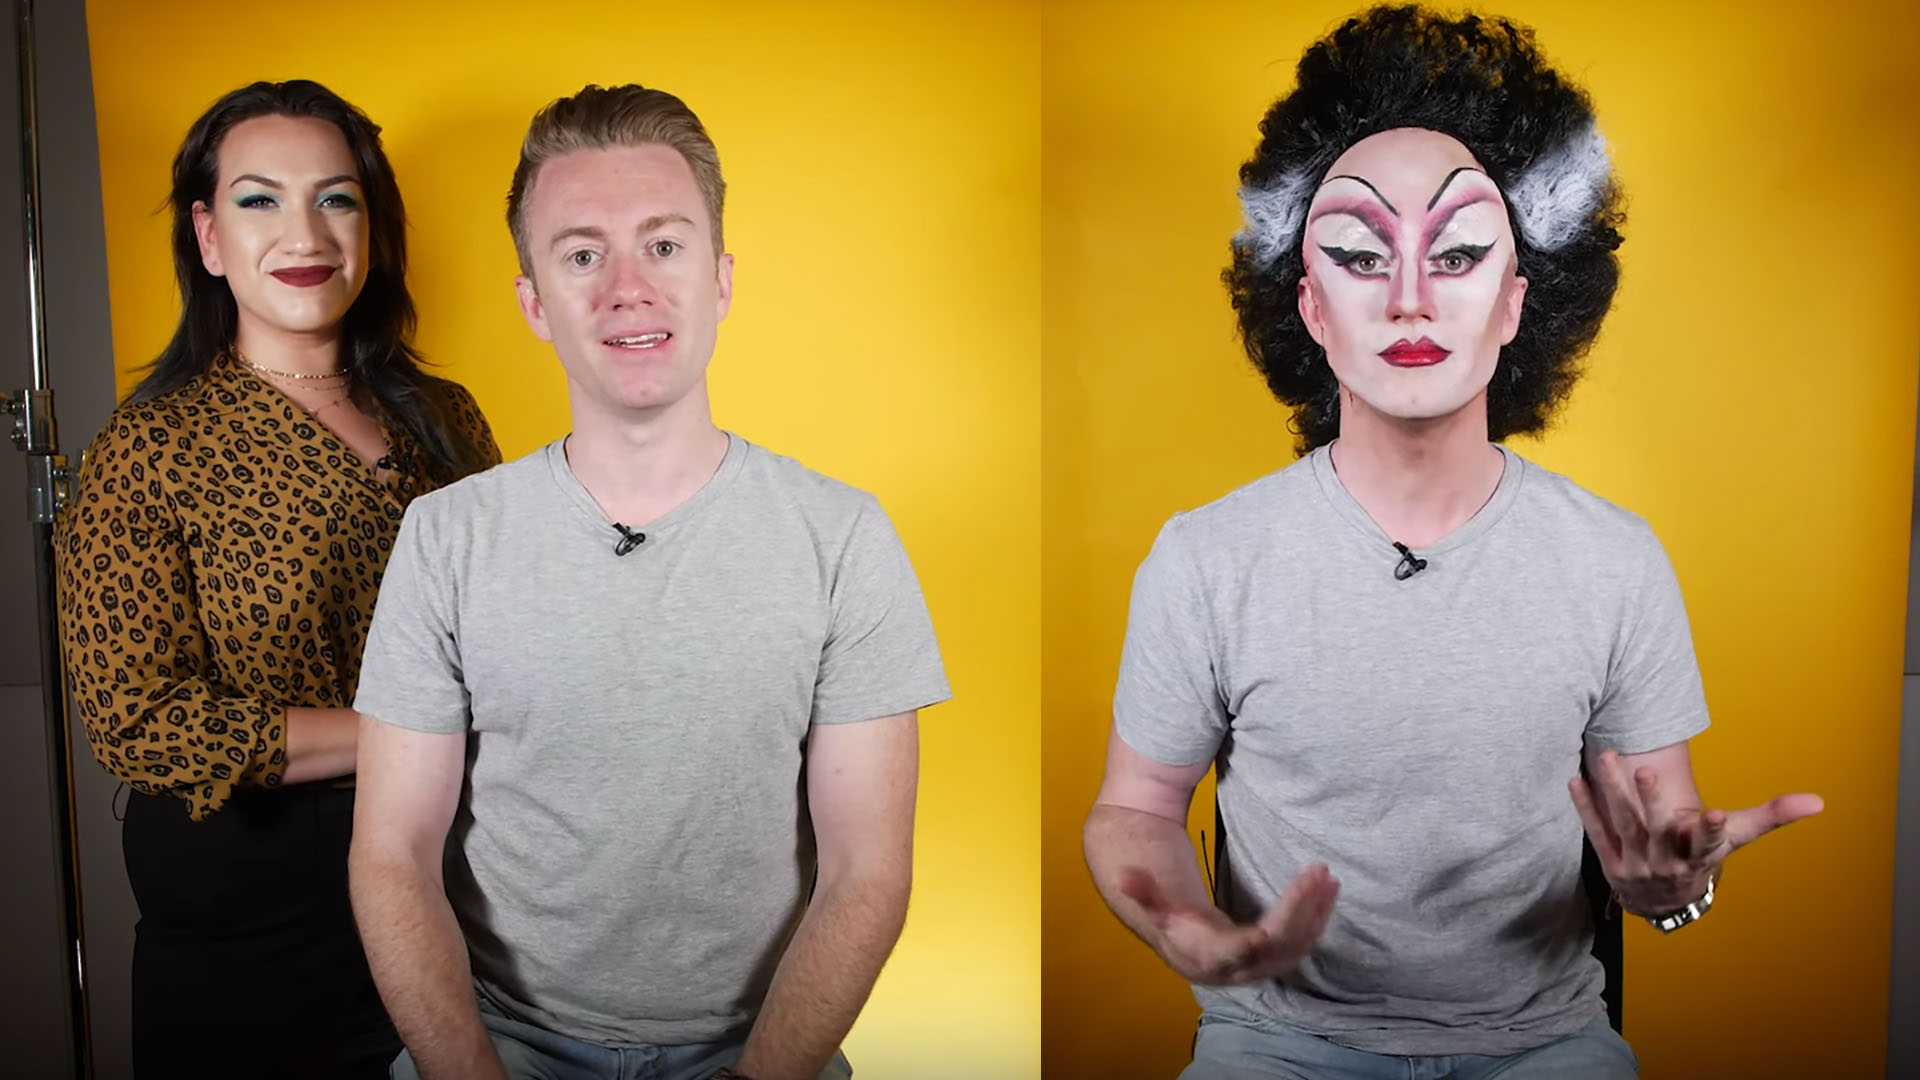 man in makeup as bride of frankenstein and without makeup